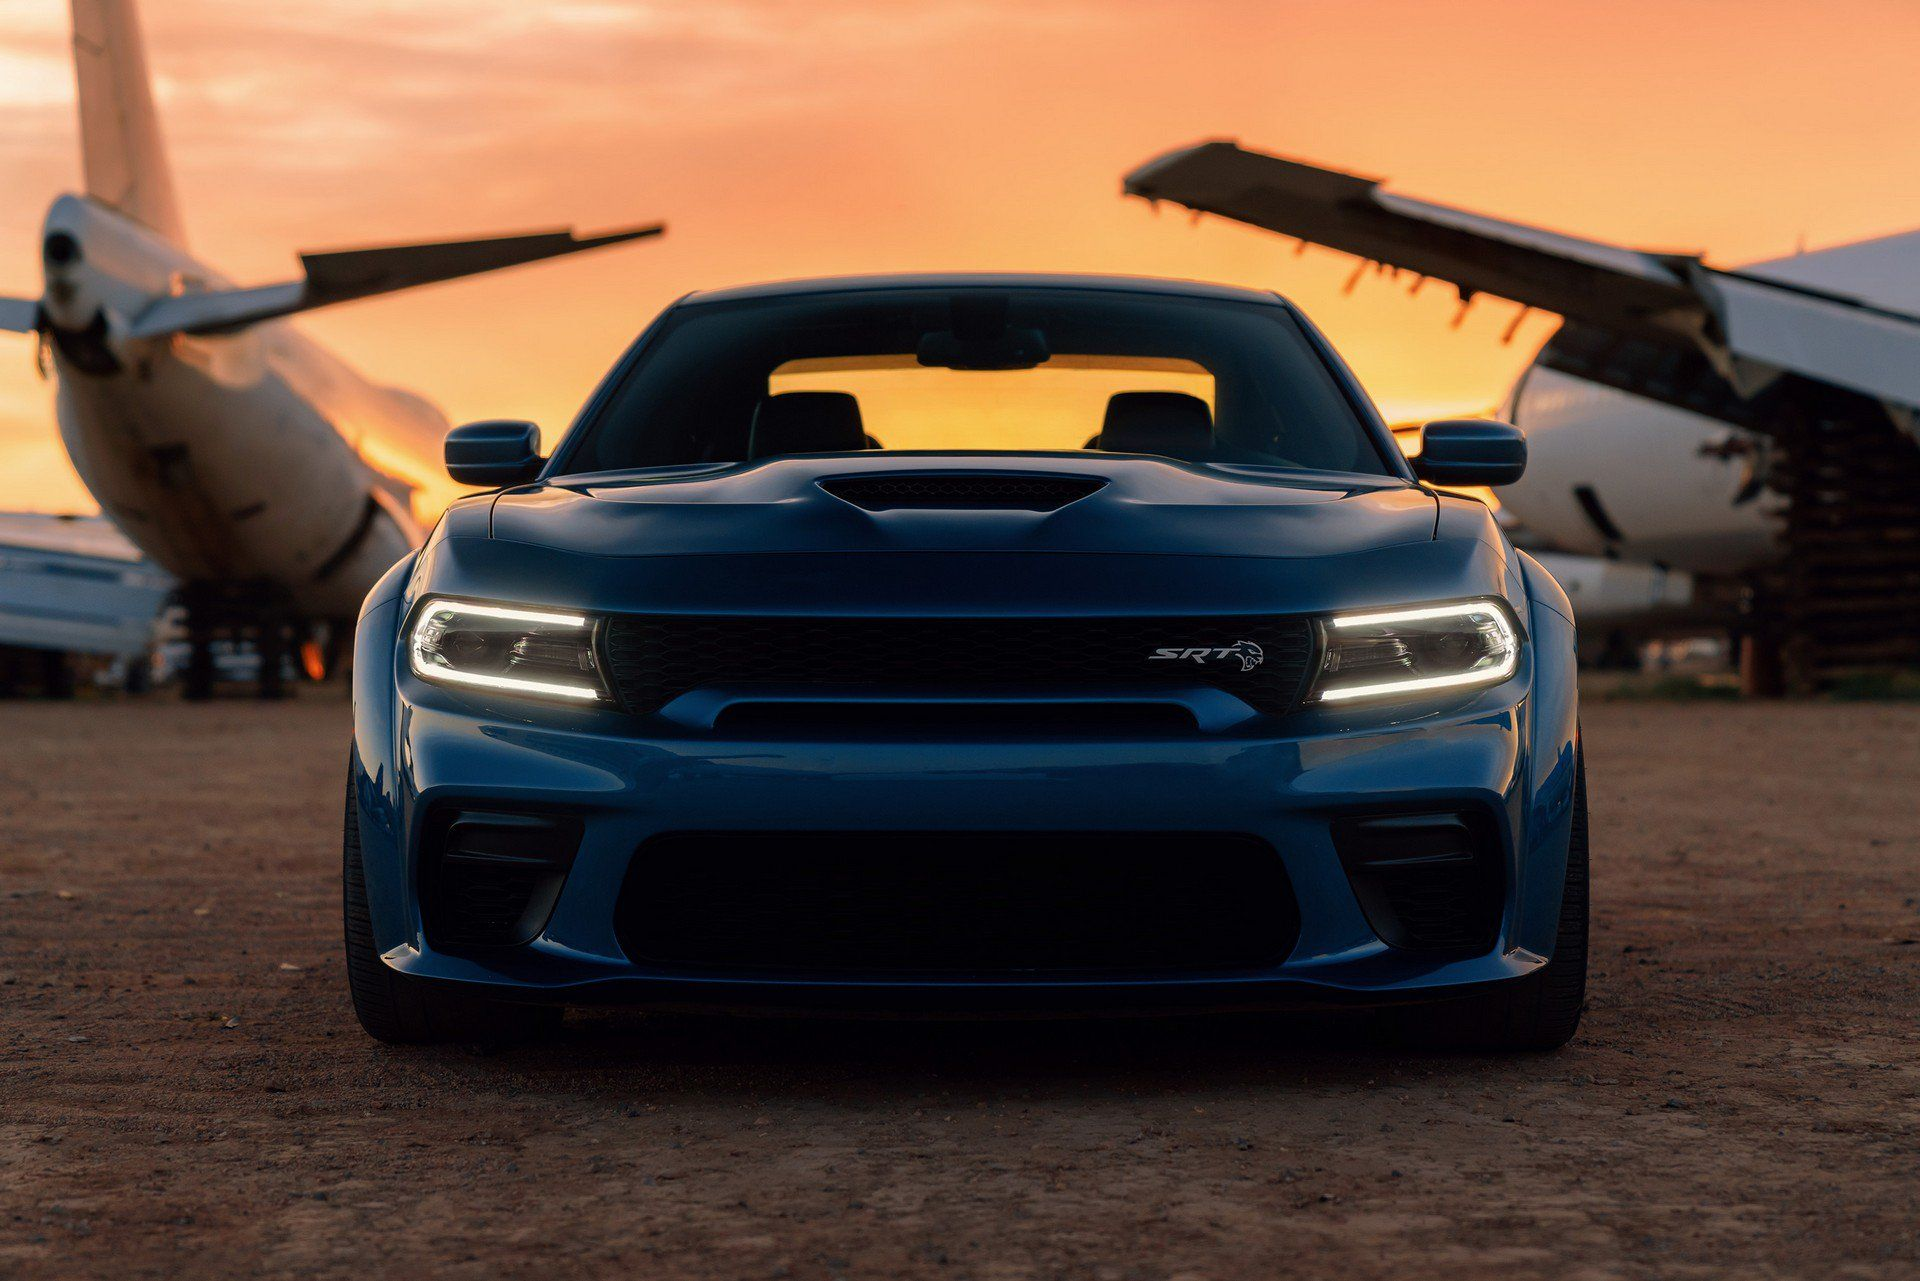 2020 Dodge Charger Scat Pack And Srt Hellcat Widebody Debut With